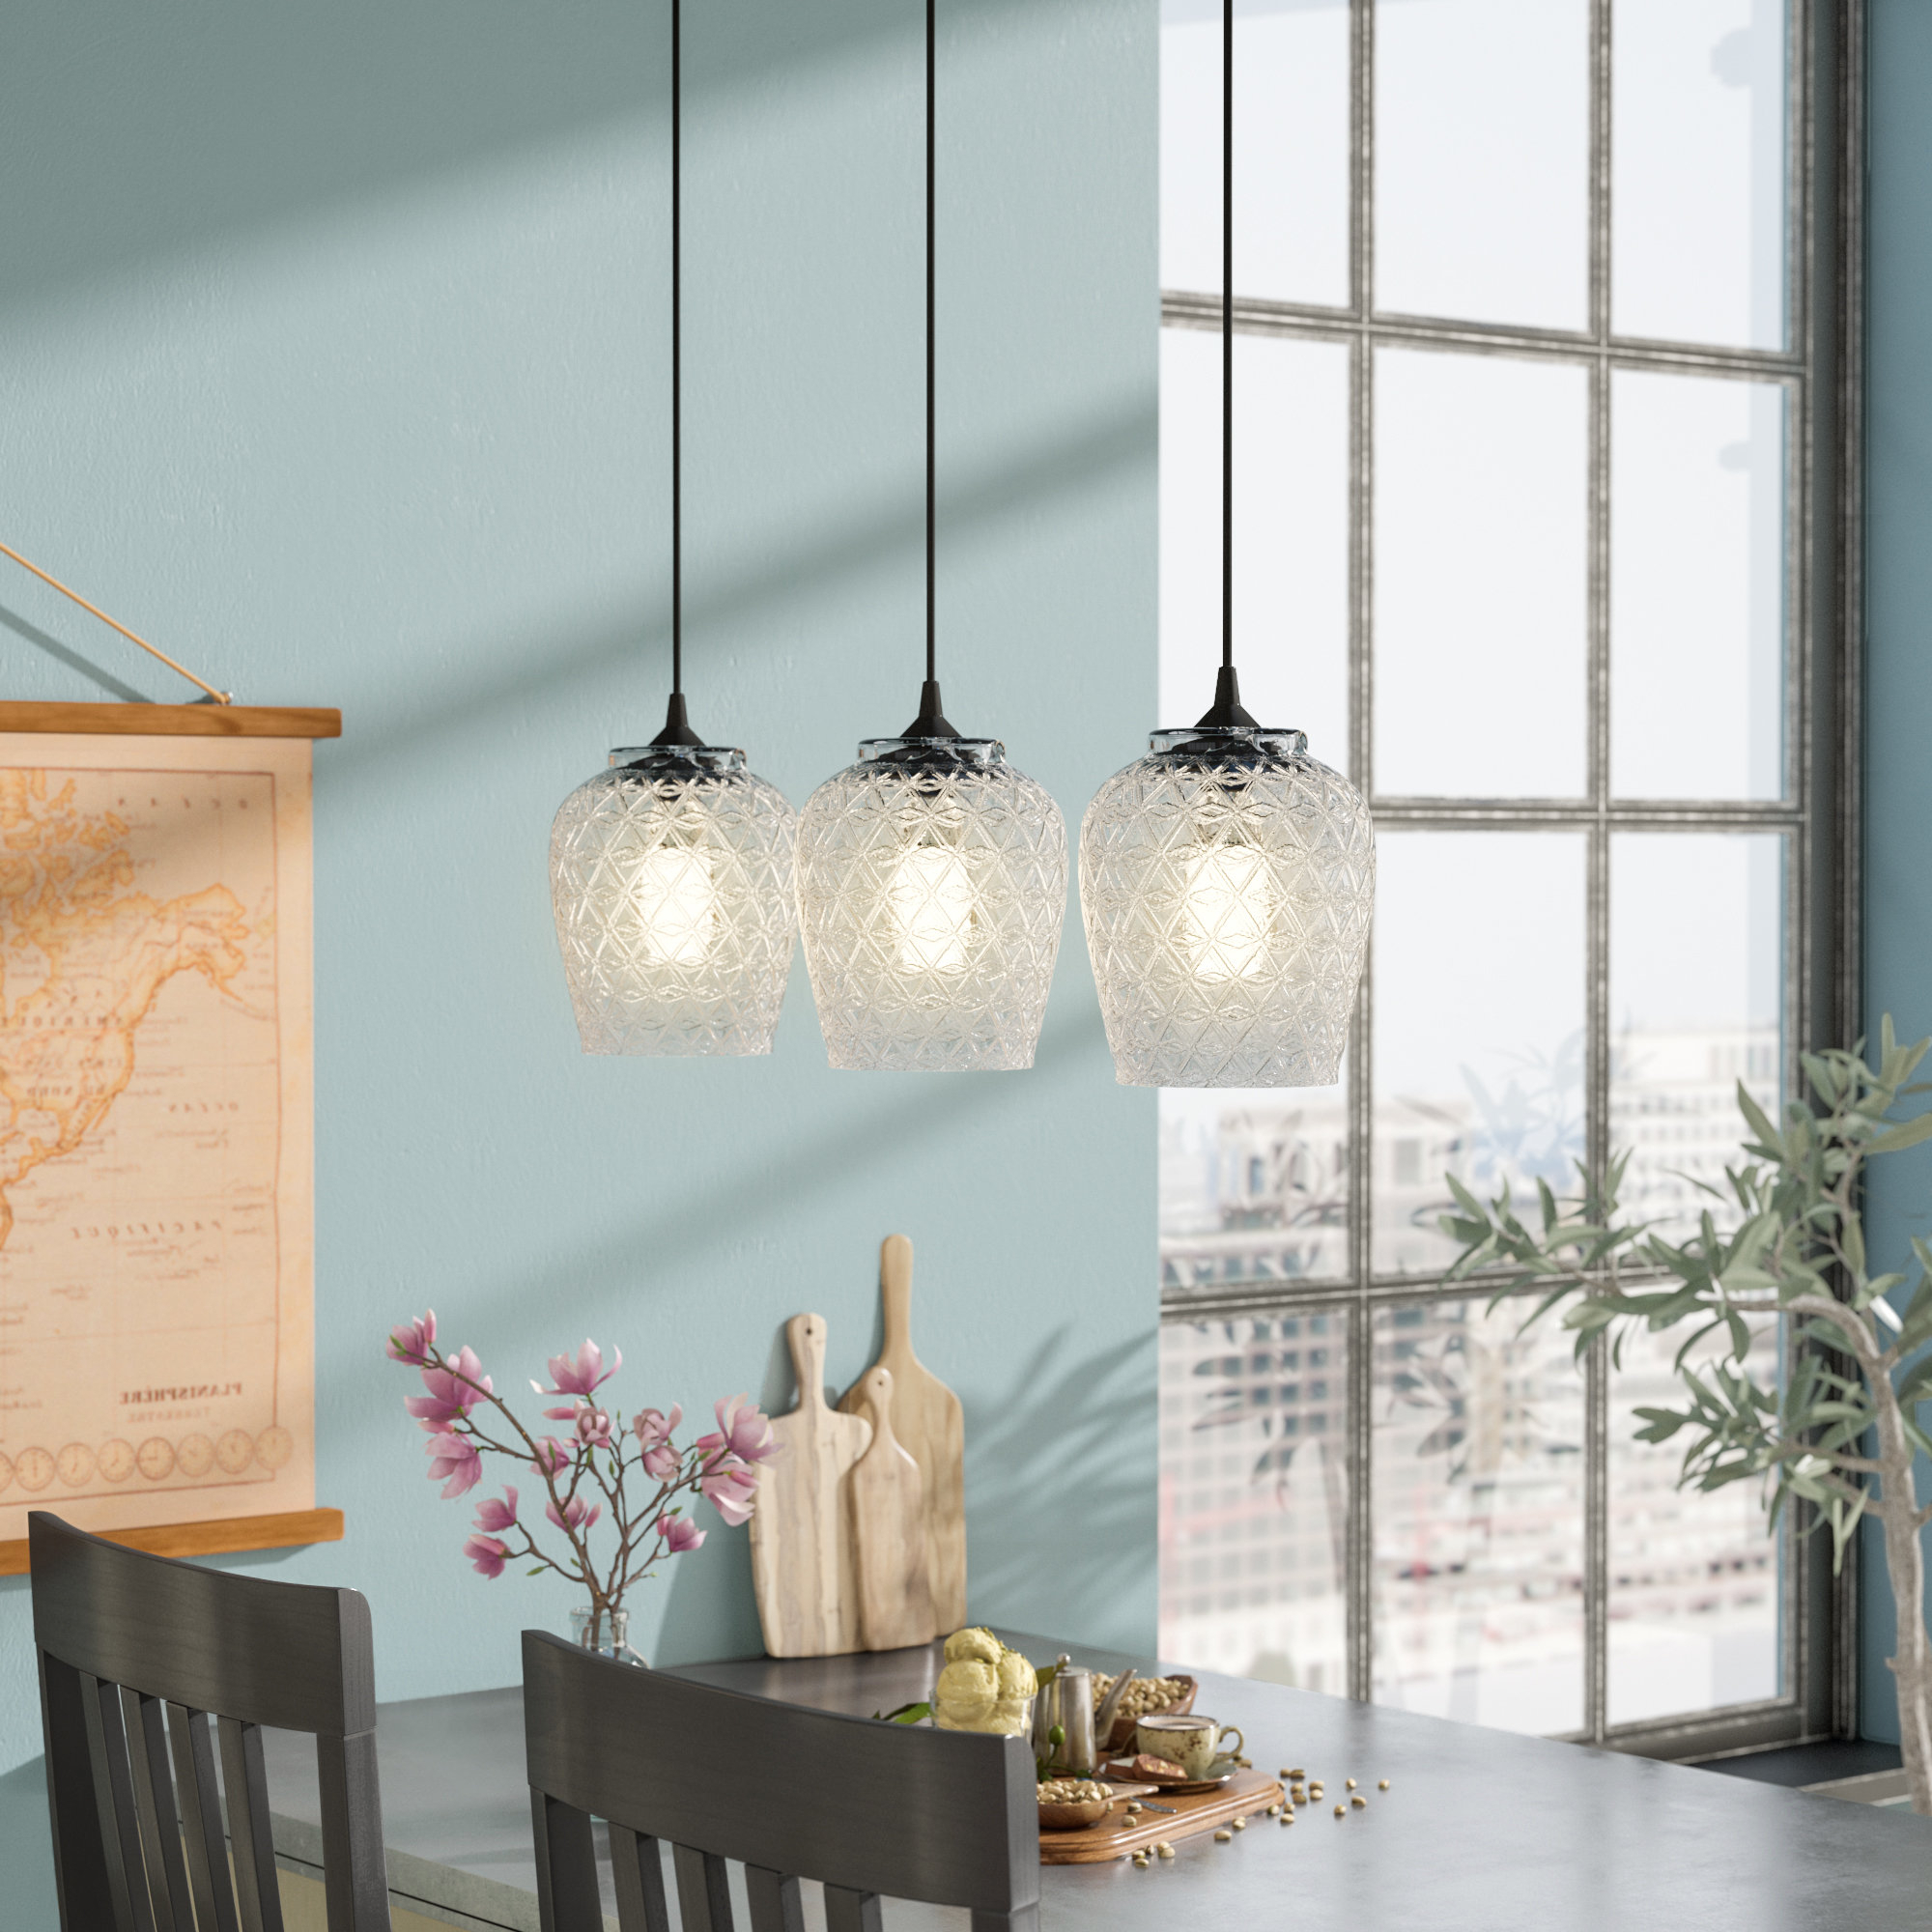 2020 Schutt 4 Light Kitchen Island Pendants In Vintage Filament Bulb Included Pendant Lighting Sale – Up To (View 1 of 20)